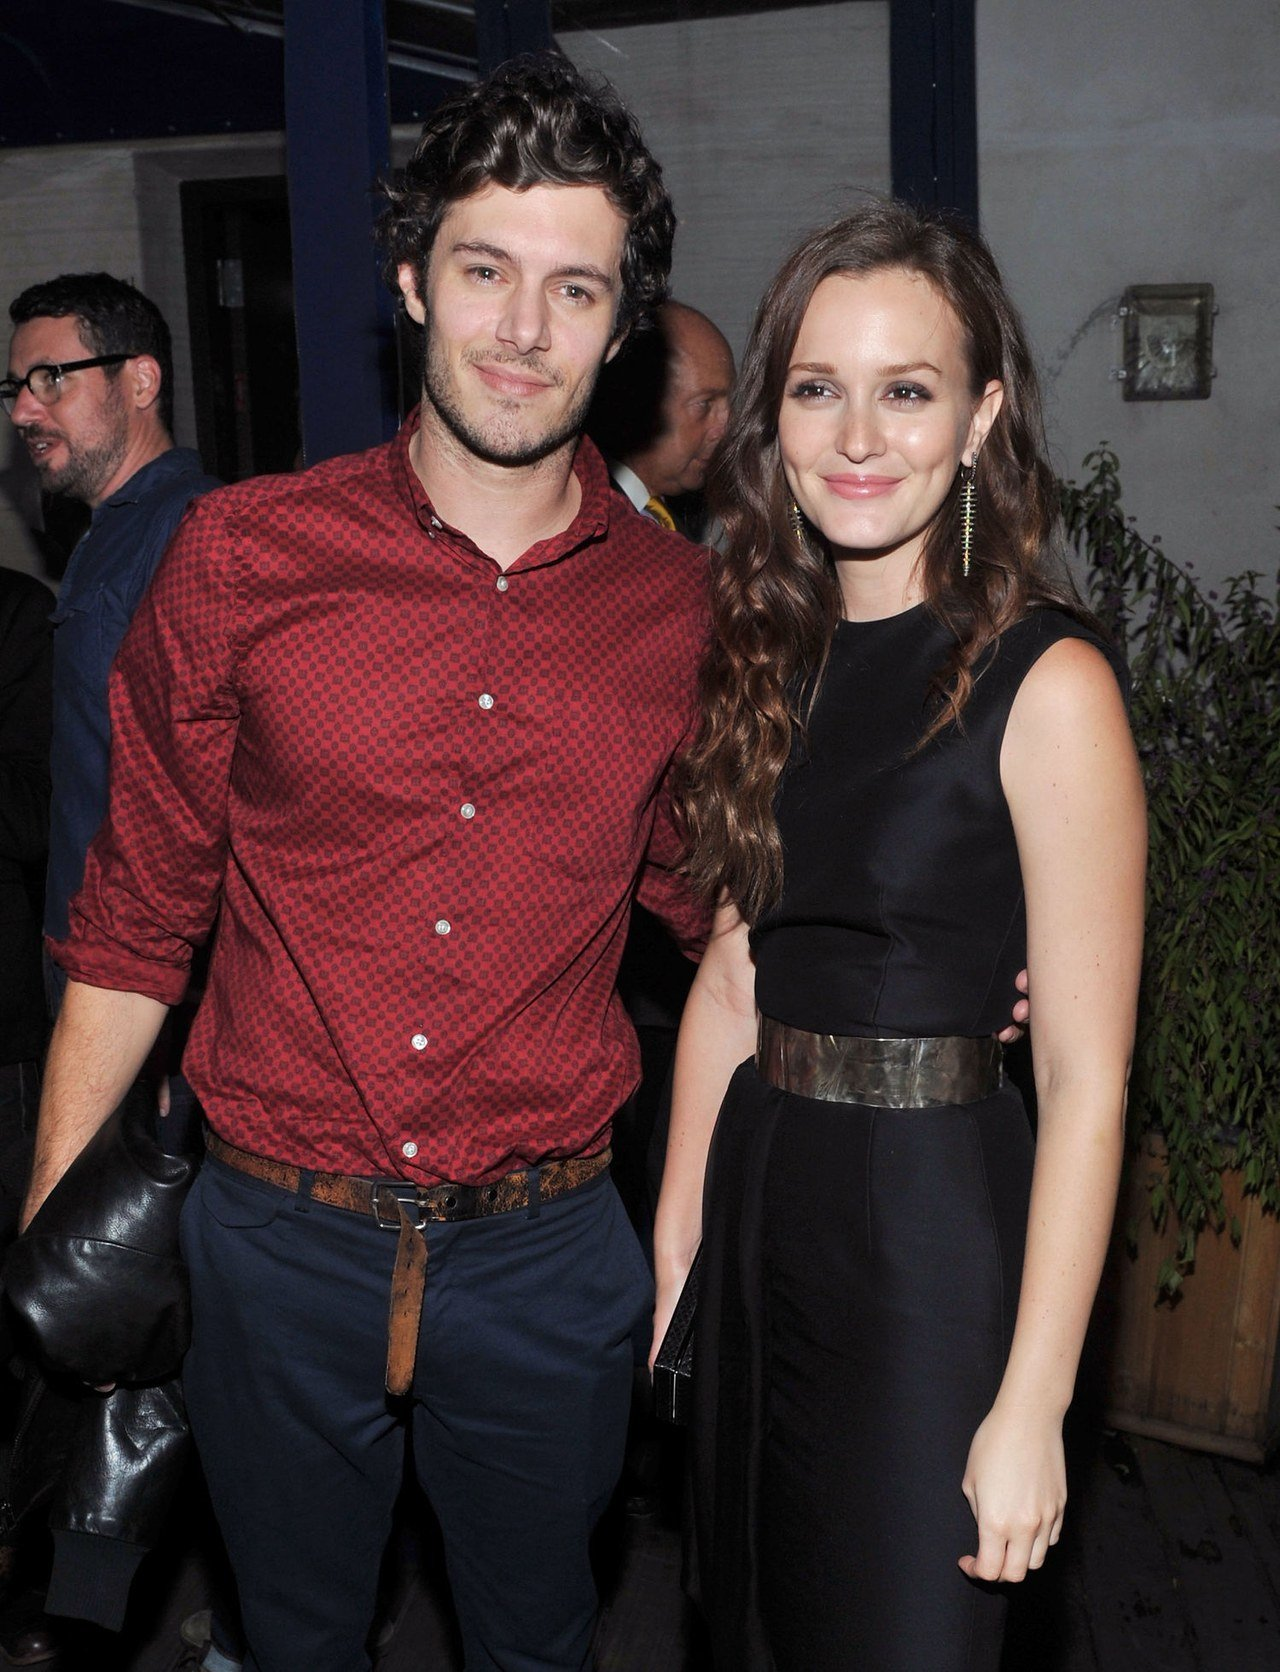 Adam Brody wraping his one hand around his wife, Leighton Meester's waist